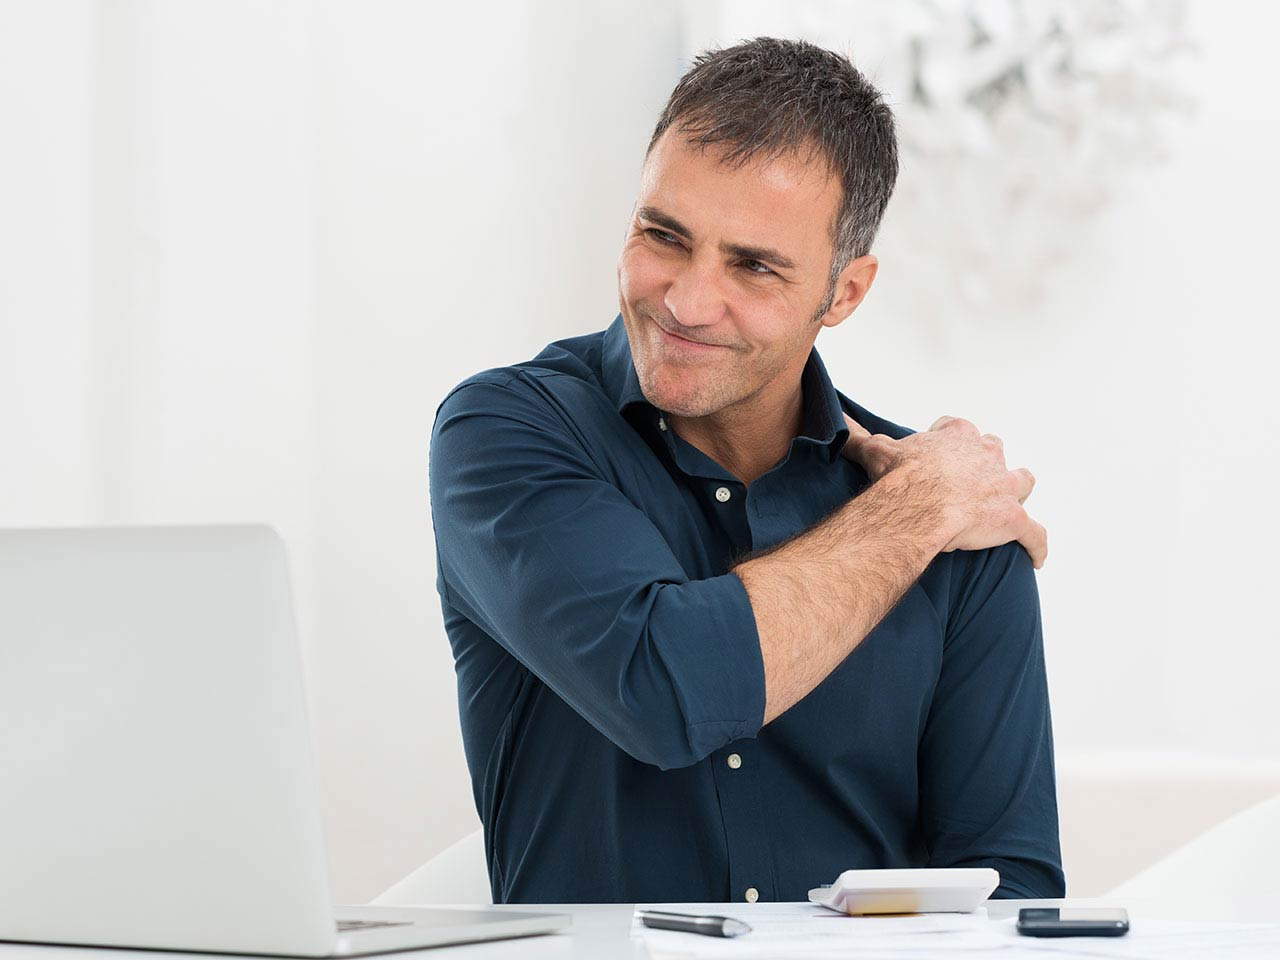 Mature man sitting in front of computer suffering shoulder pain